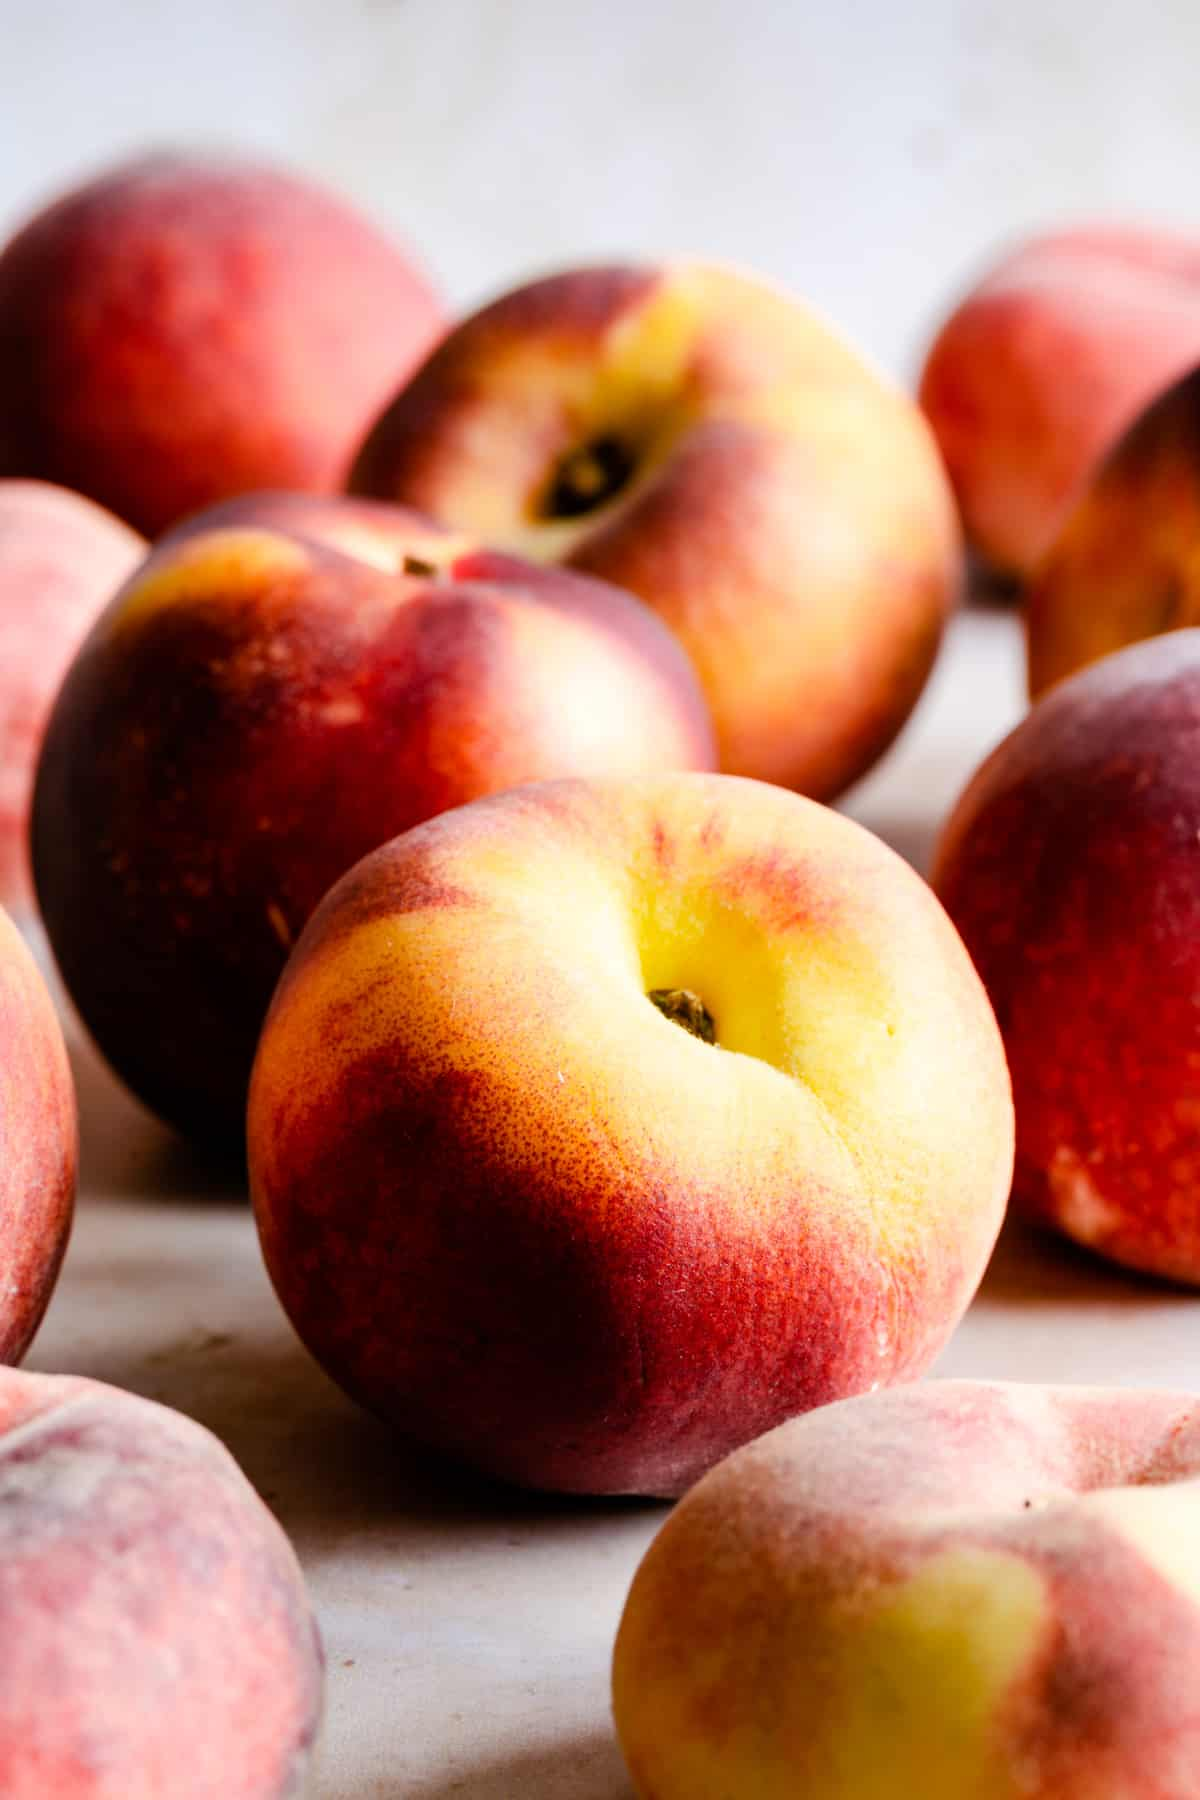 a side view of whole fresh peaches